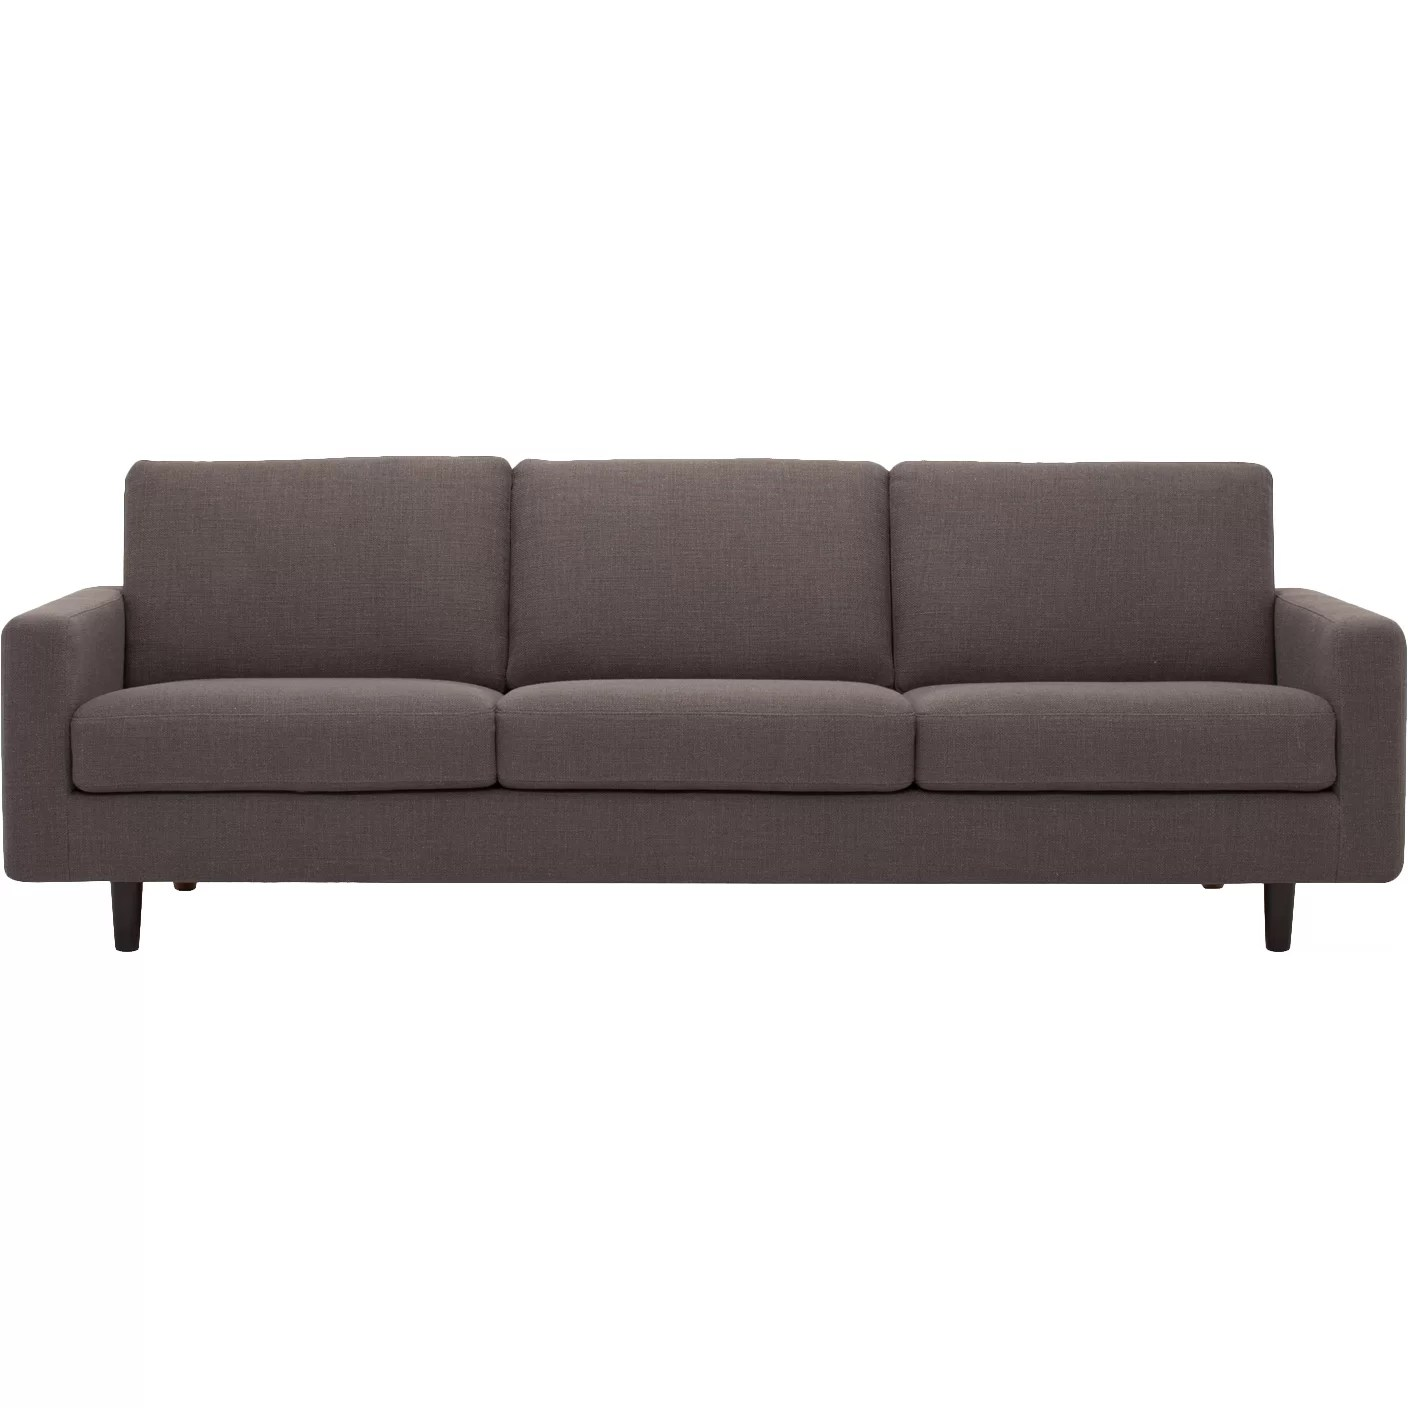 eq3 sofa burgundy bed oskar wayfair ca